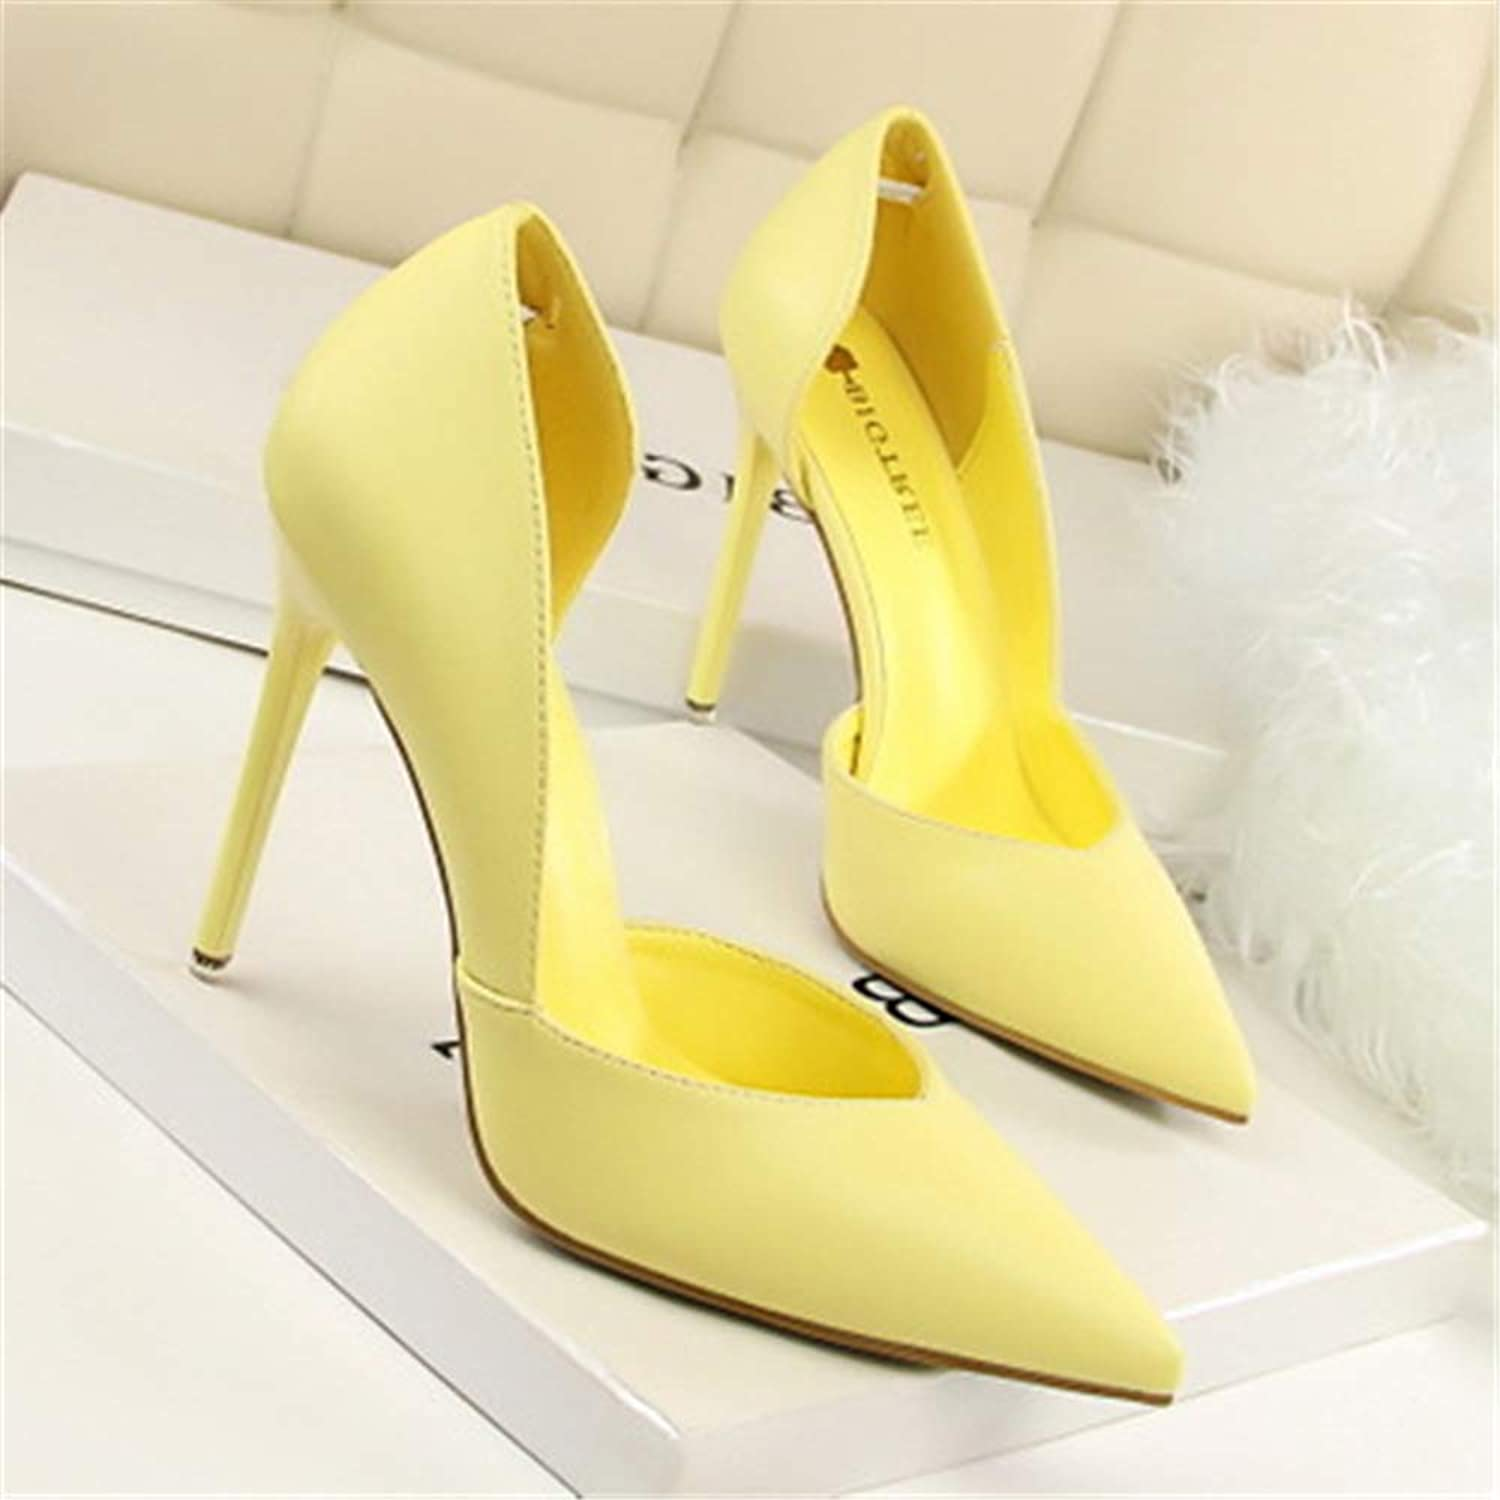 Linson123 Women's Fashion Pointed high Heels Sexy Non-Slip Dress shoes Wedding shoes